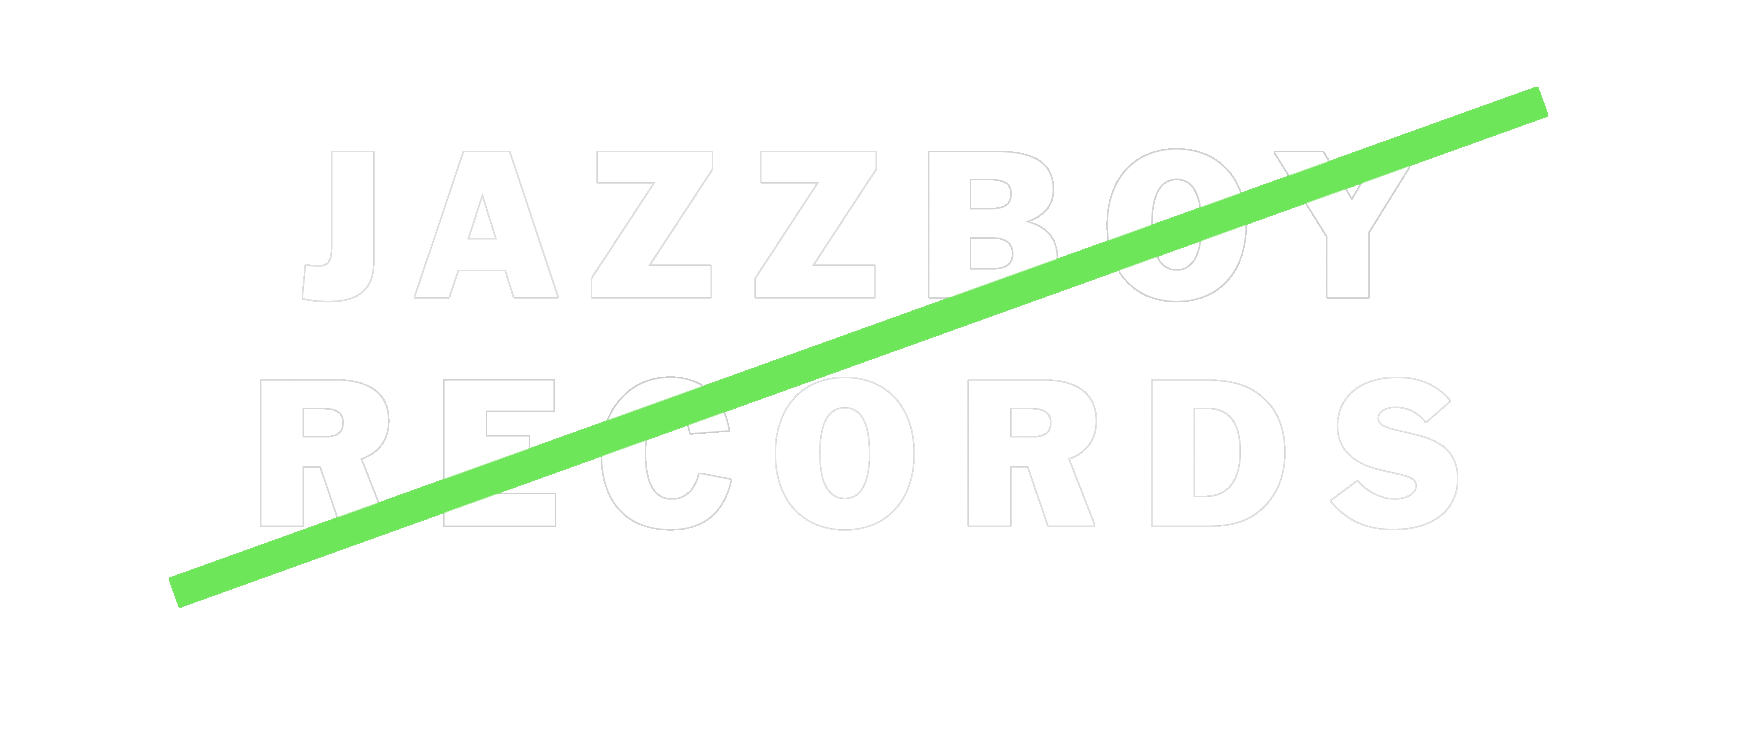 Jazzboy Records Logo